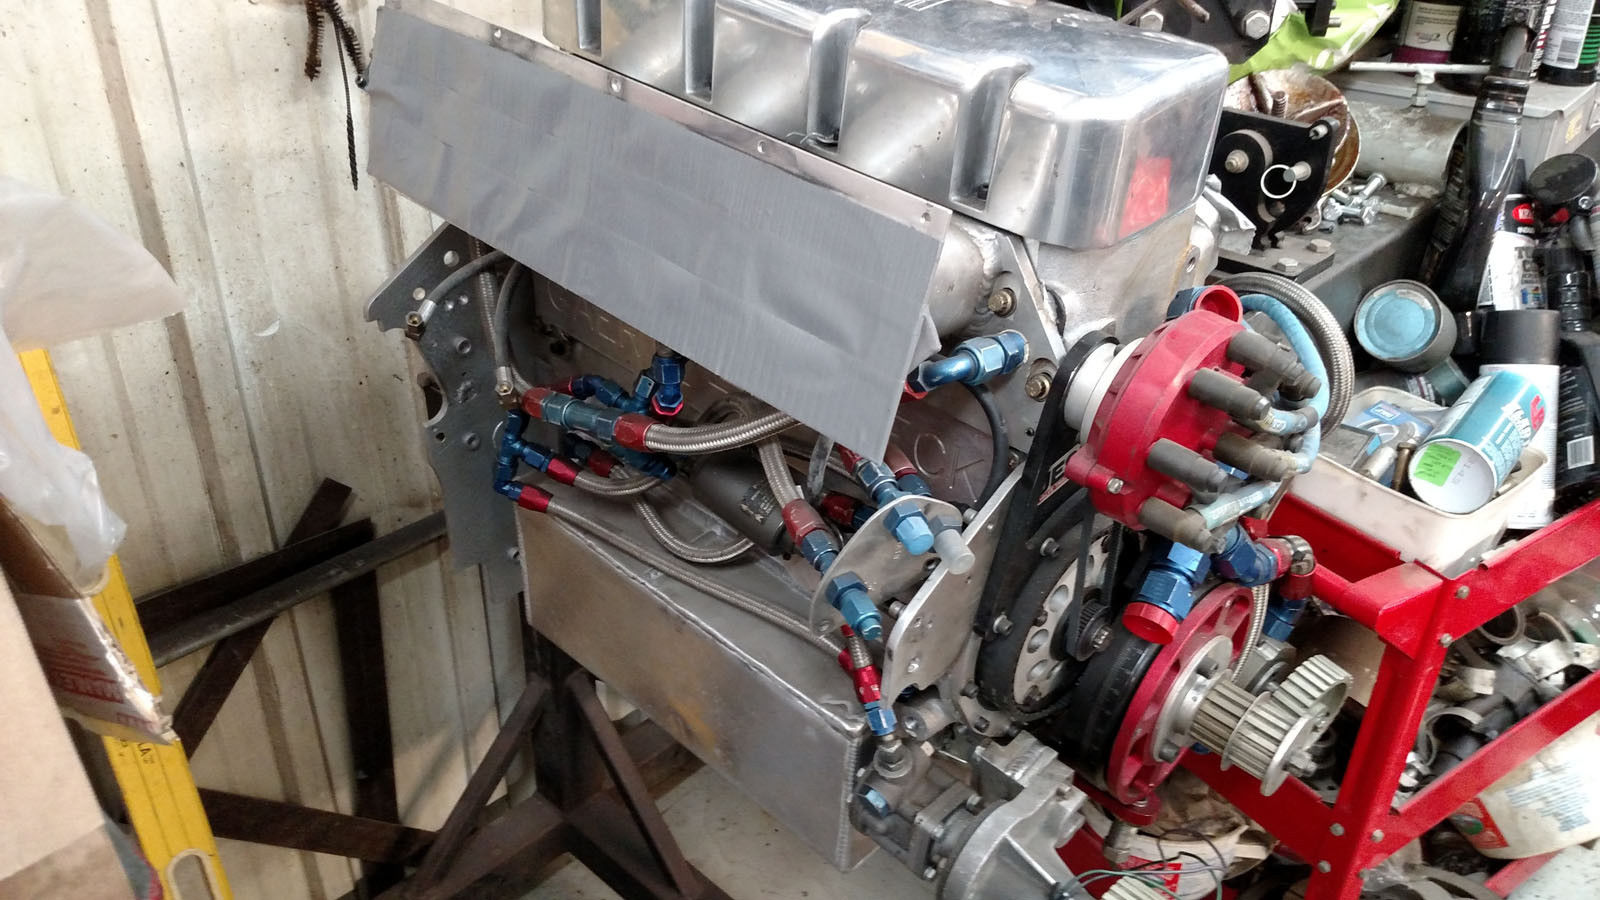 216ci Pontiac Sd4 Racing Engine For Sale Horsepower Parts Ebay This Makes More Than 500hp Naturally Aspirated